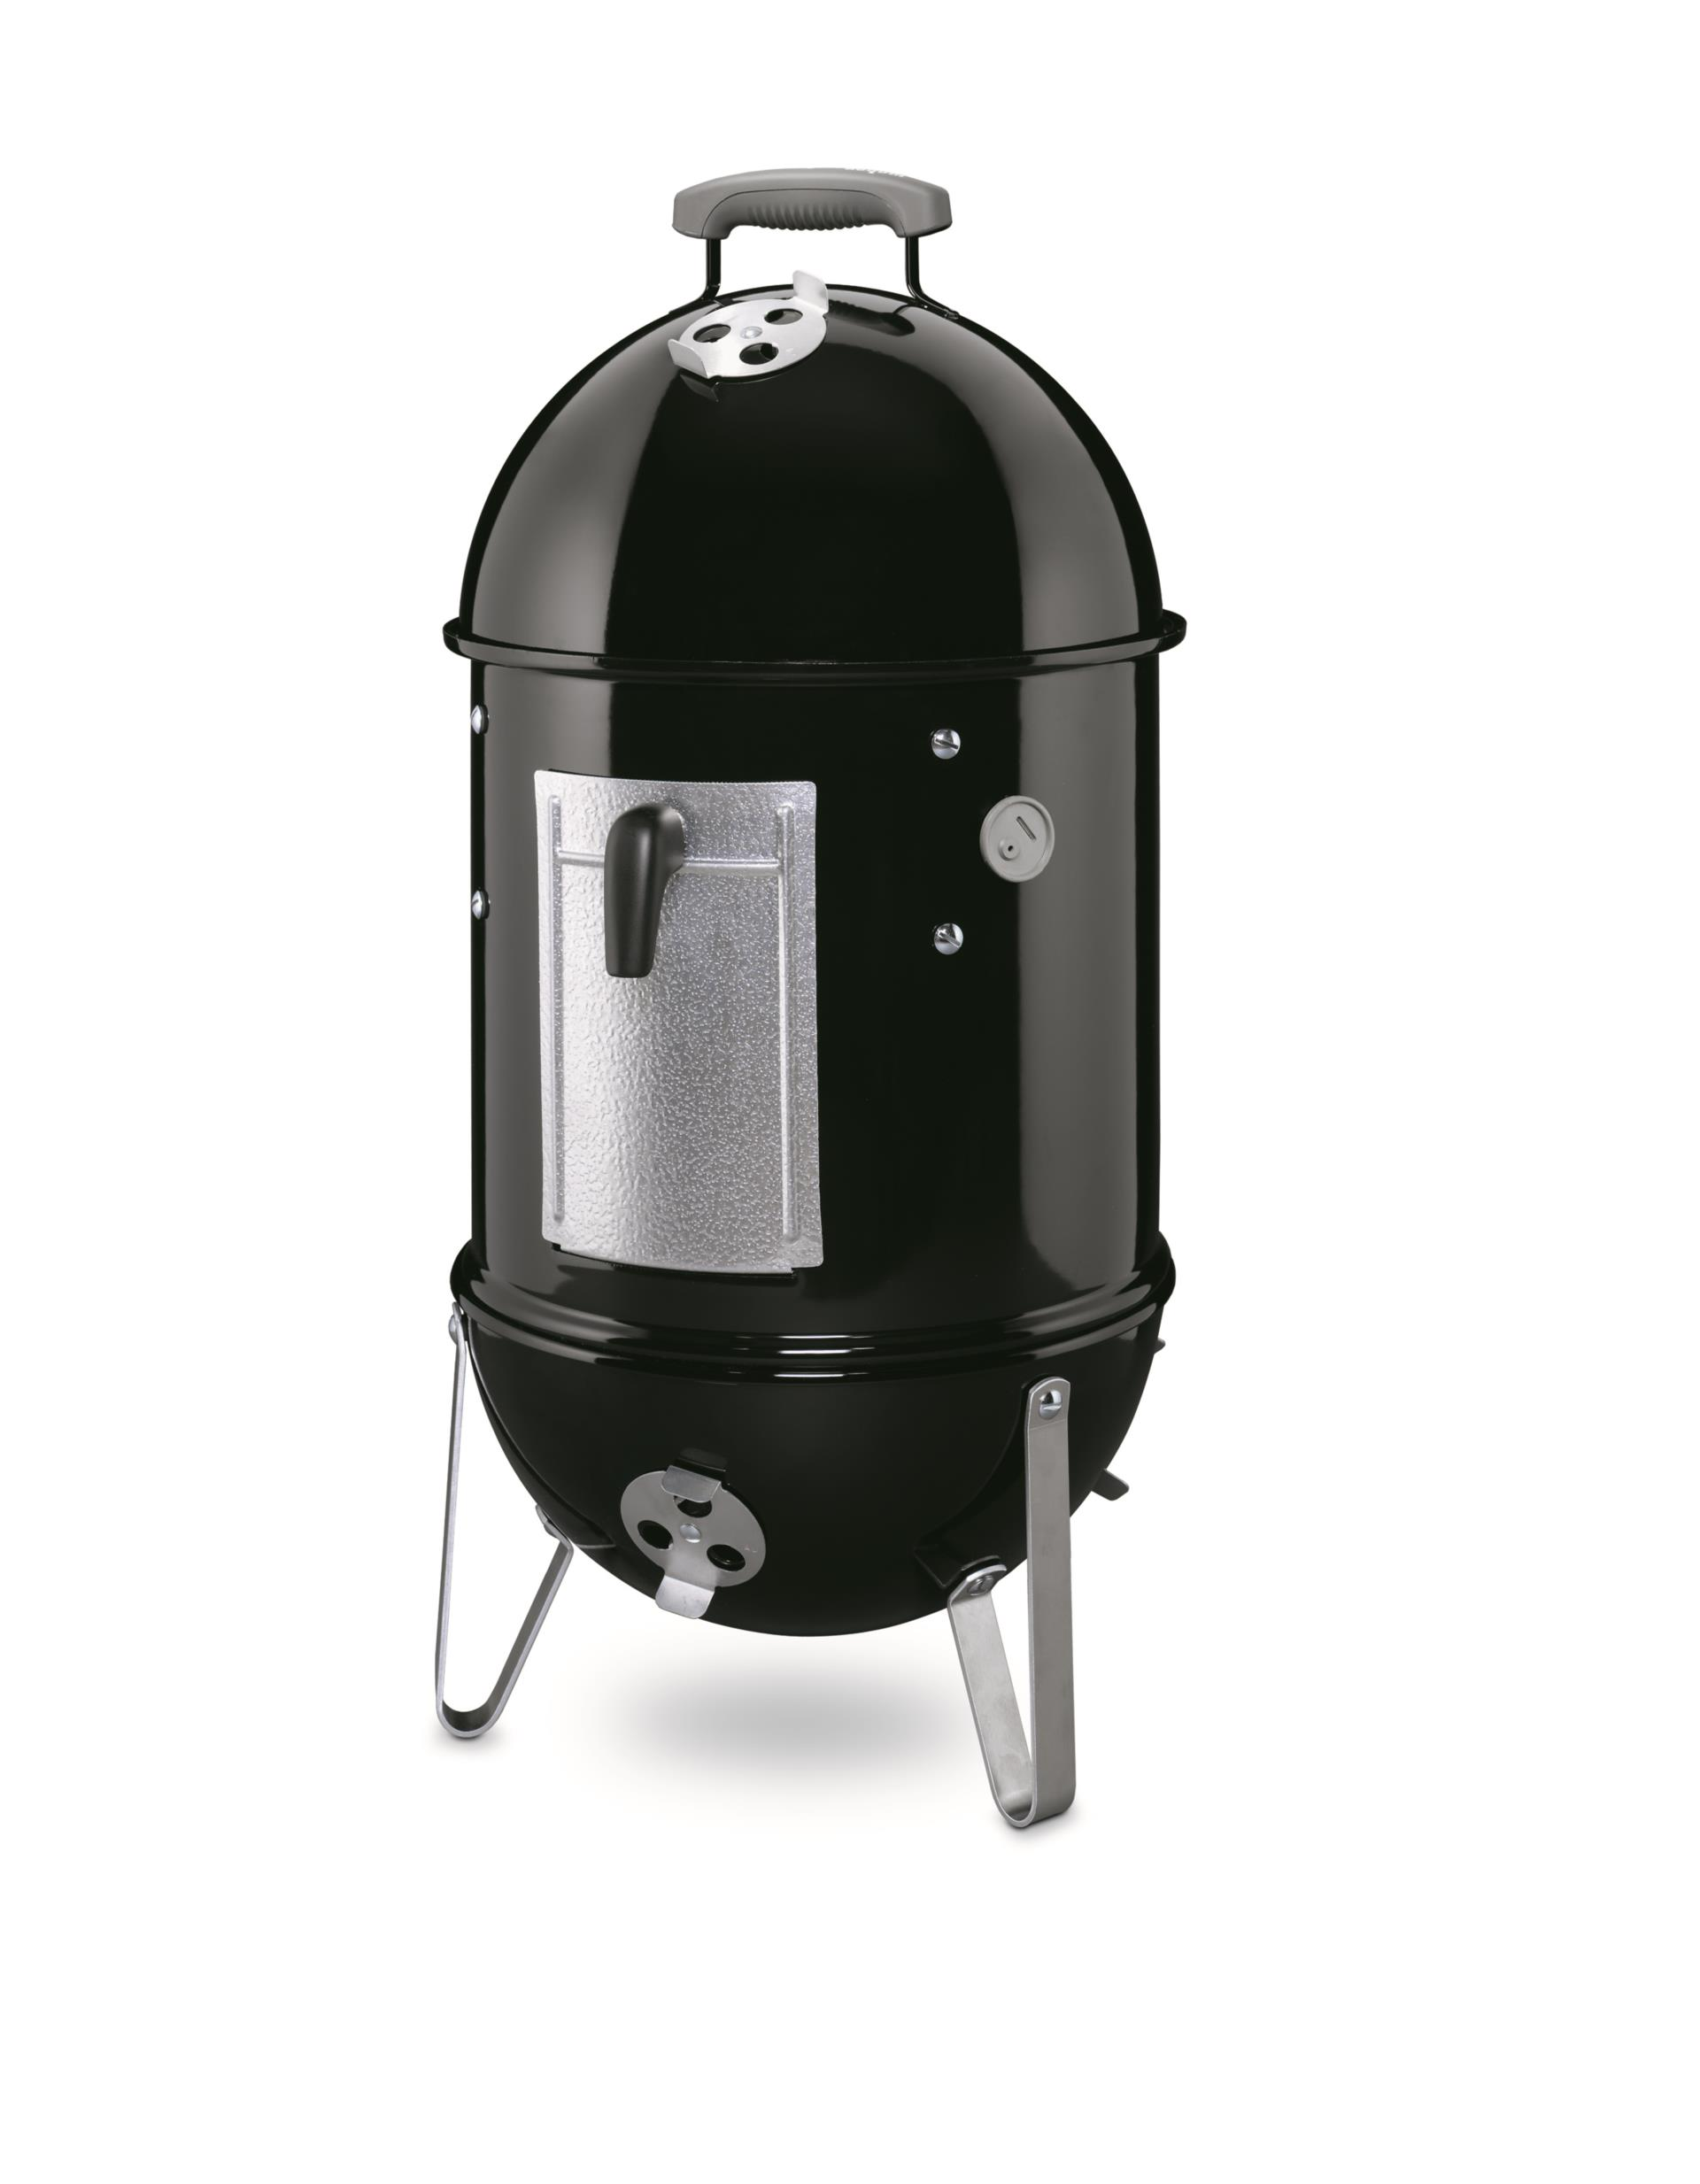 Weber Smokey Mountain Cooker, 37 cm, Black